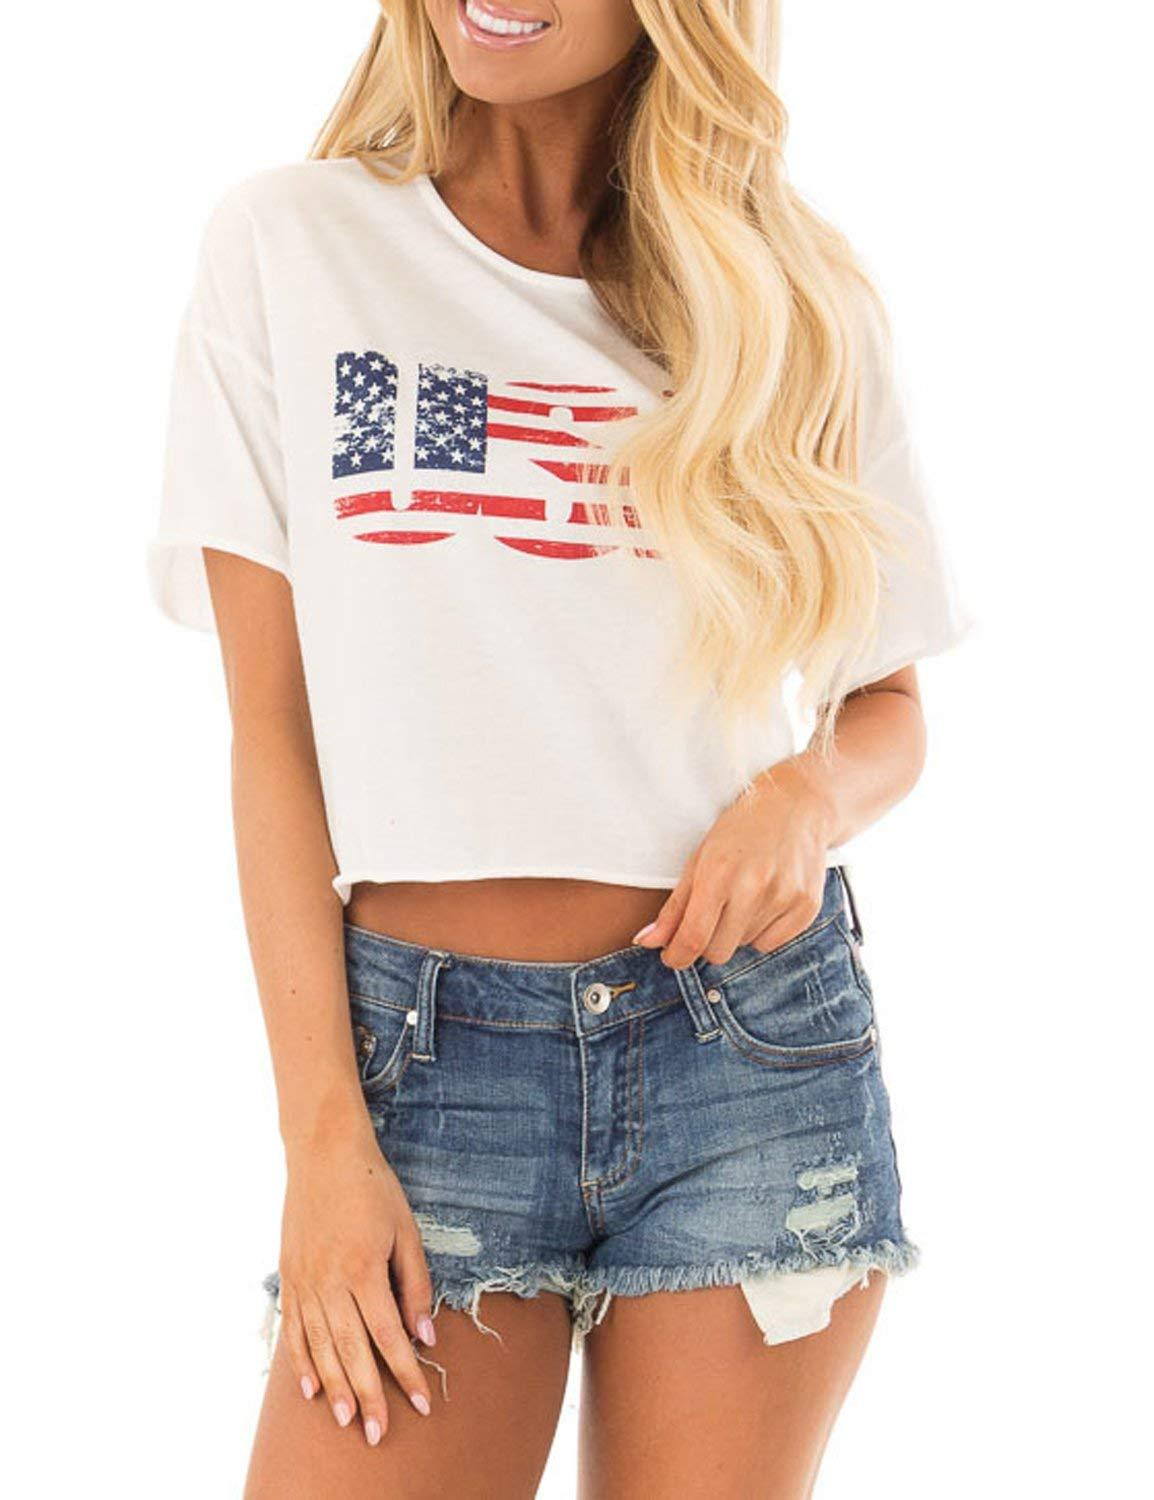 Blooming Jelly Women's Short Sleeve White USA Crop Top Letter Print Round Neck Tee Shirt